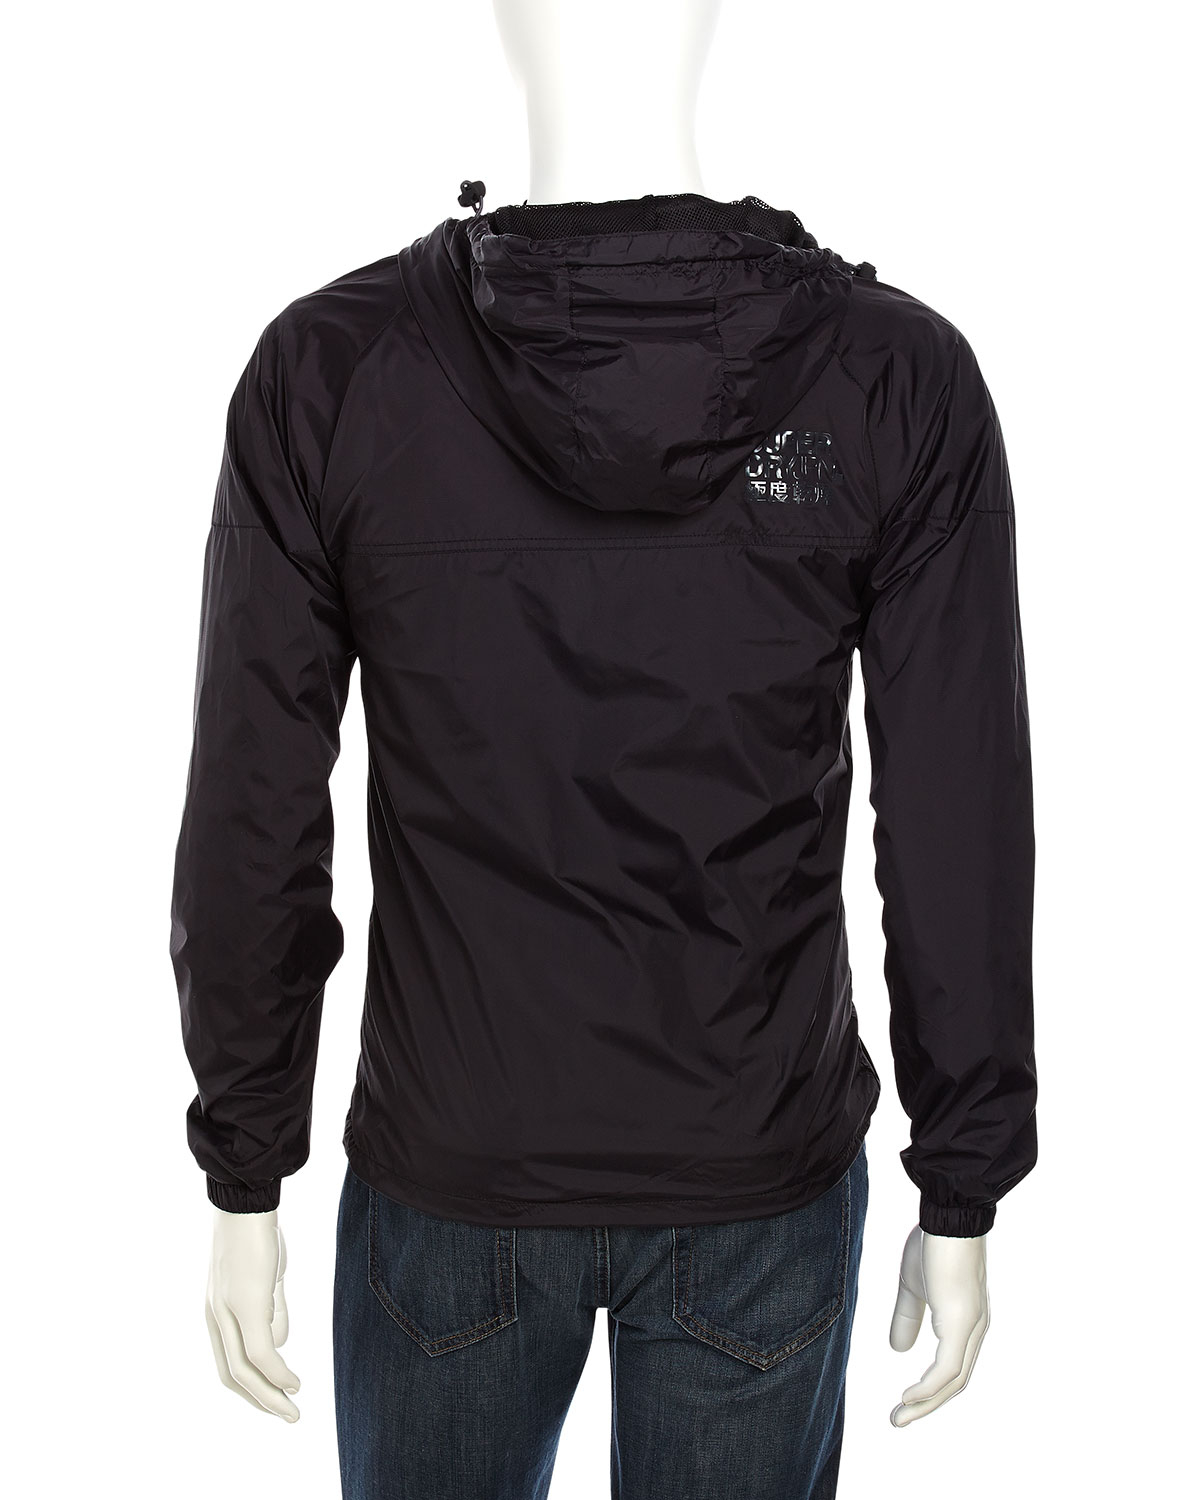 shop great discount for 2019 wholesale price Superdry Zip Hooded Rain Jacket Black for men